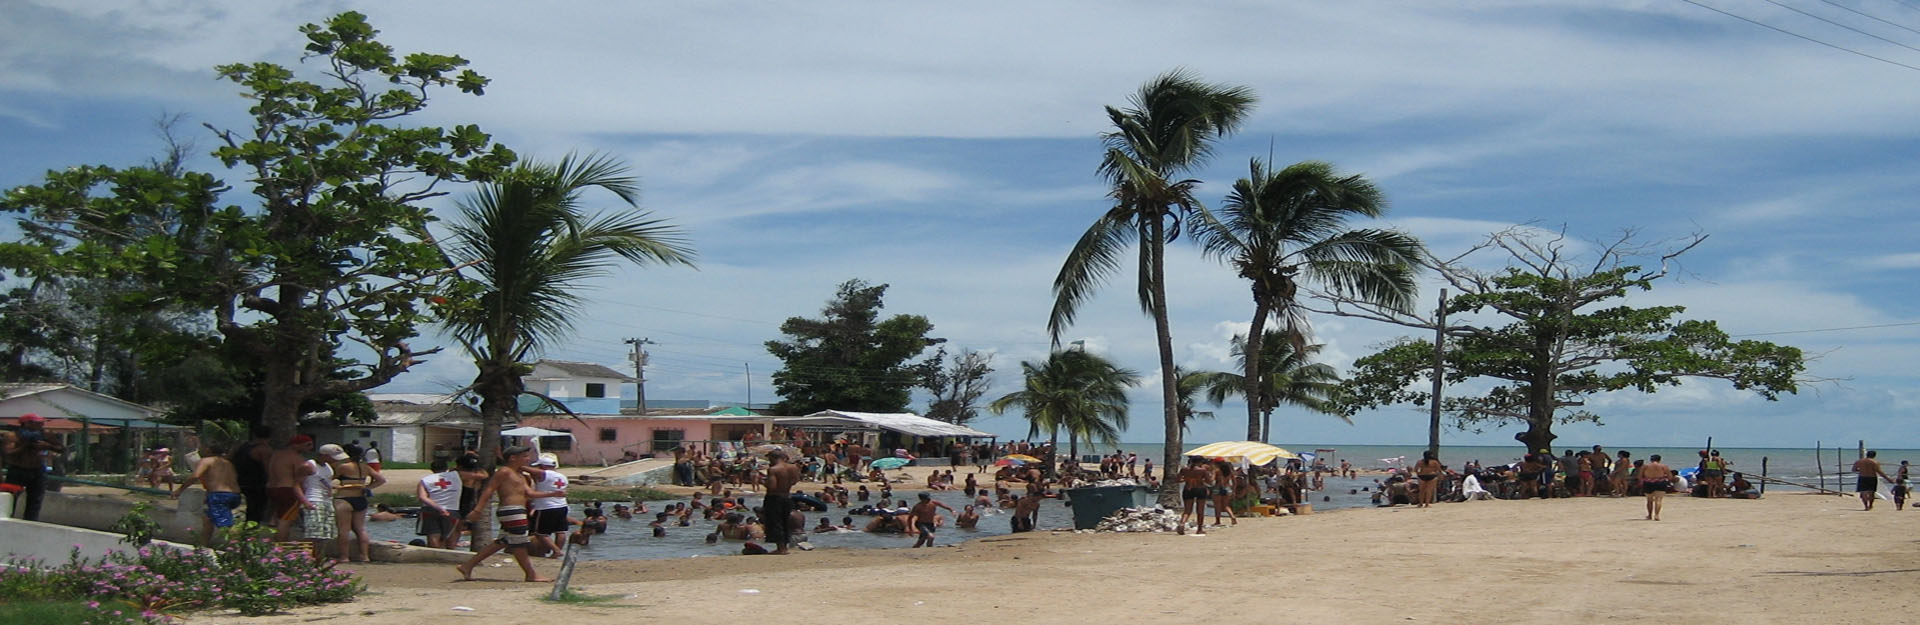 Mayabeque beach, Cuba Travel